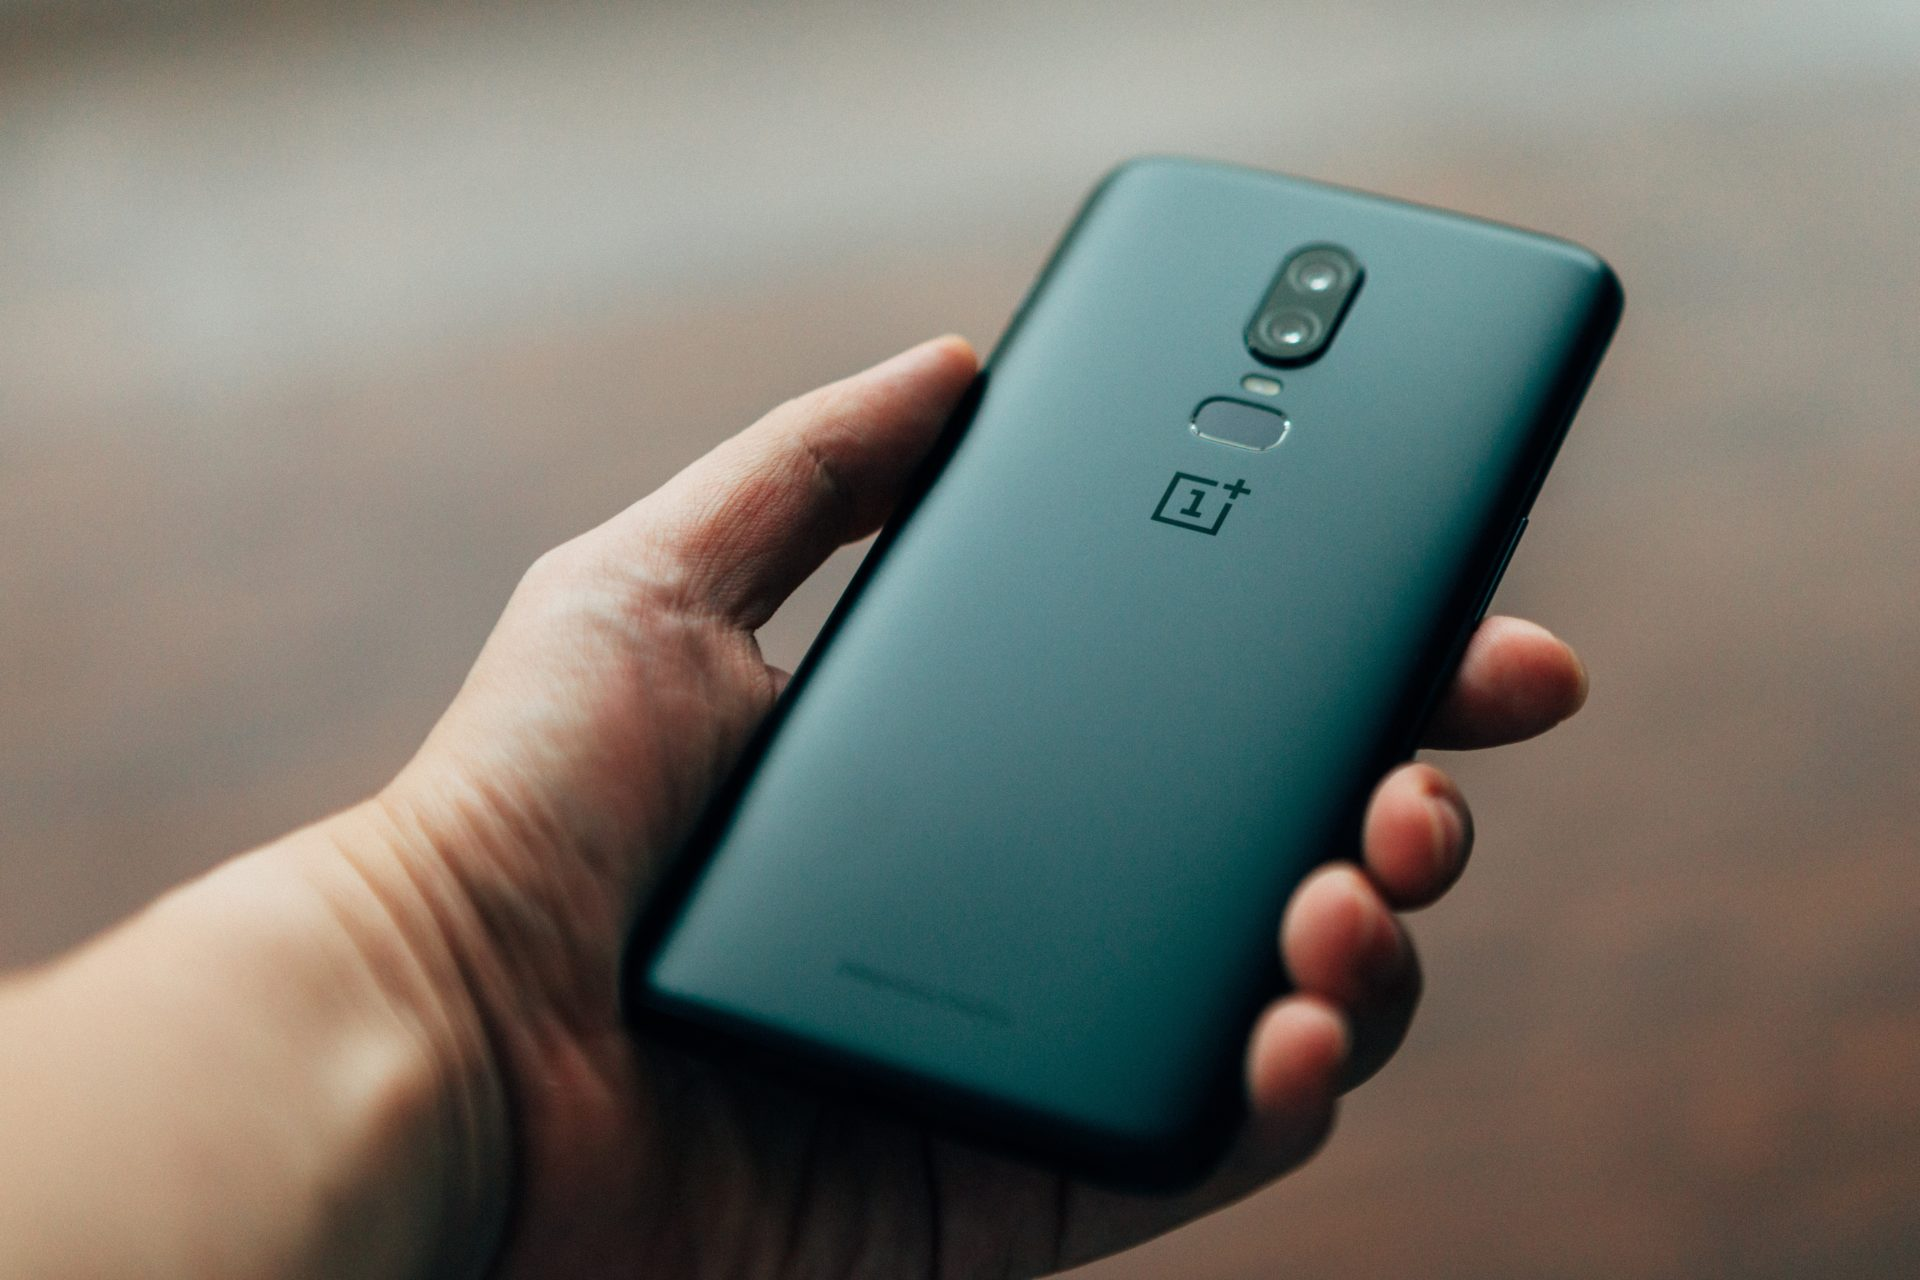 Millennials are more fond of OnePlus than Apple